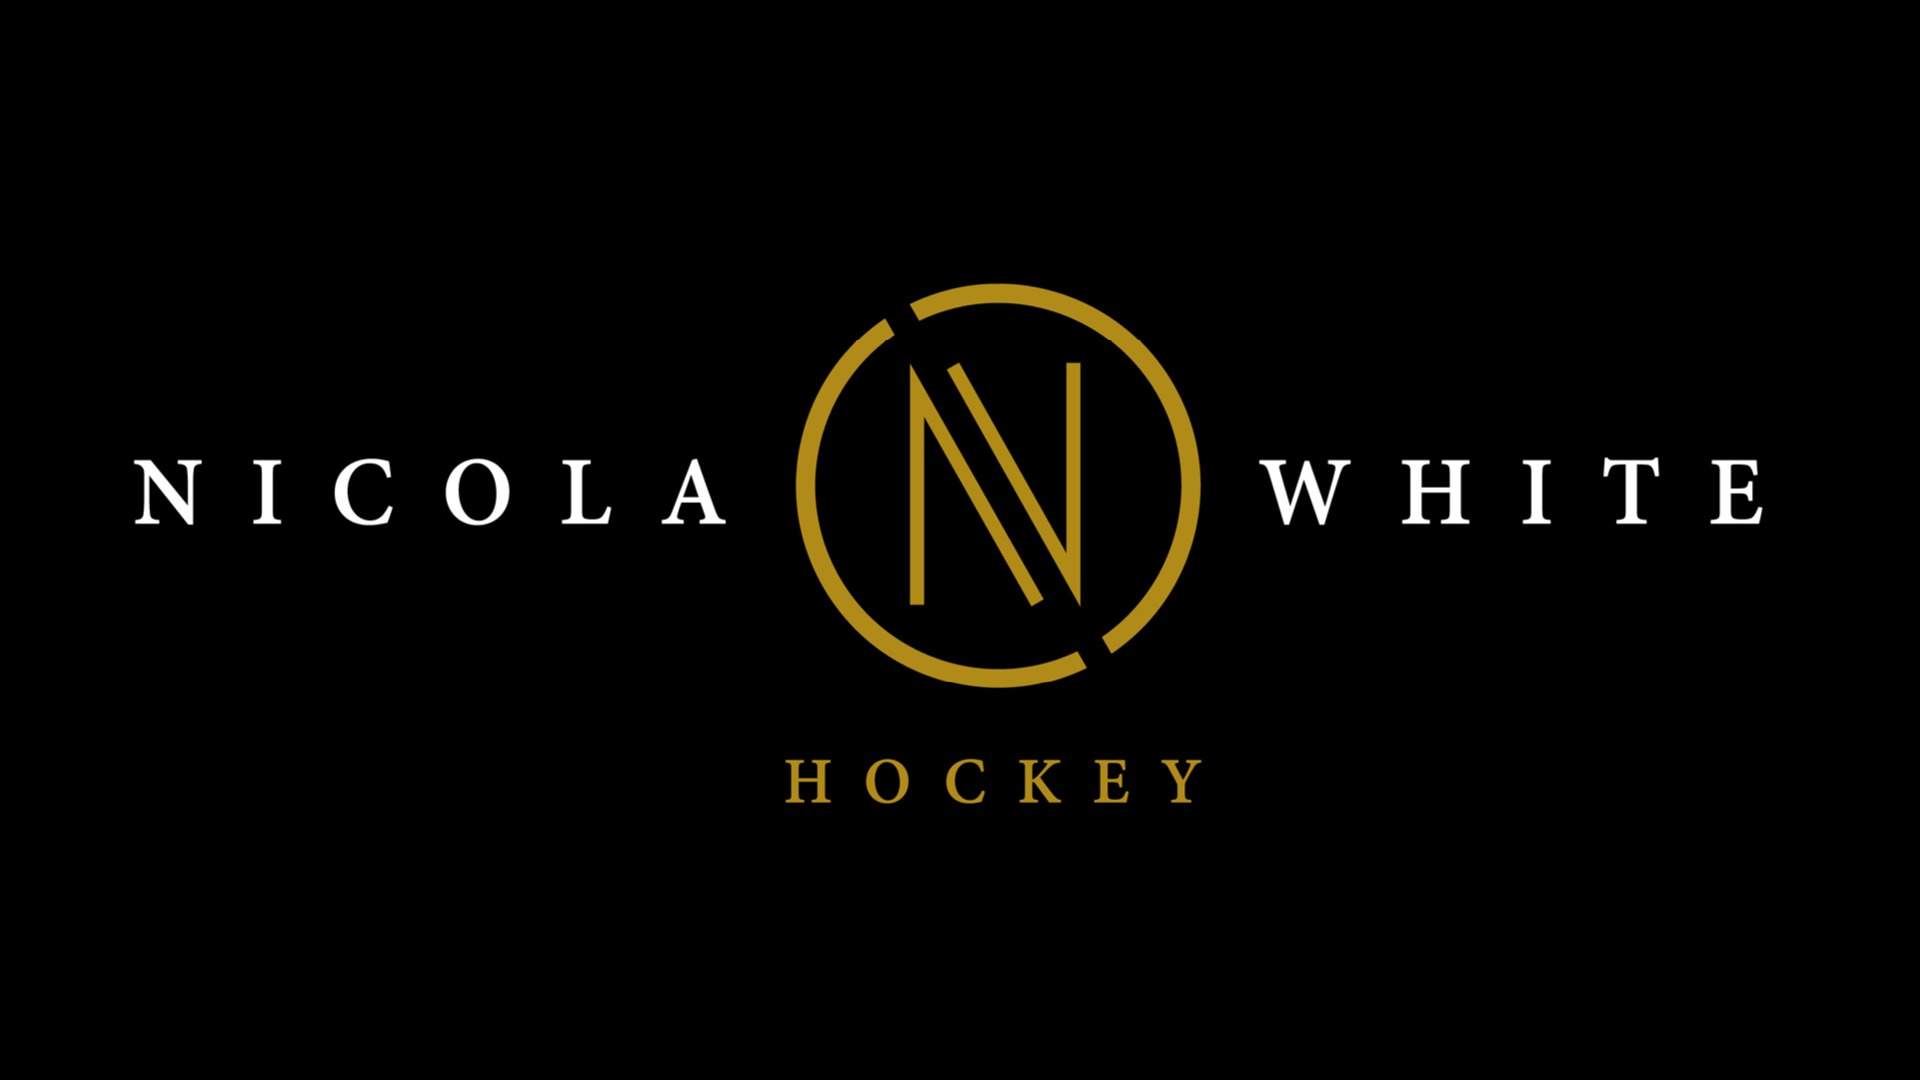 Nicola White Hockey Branding